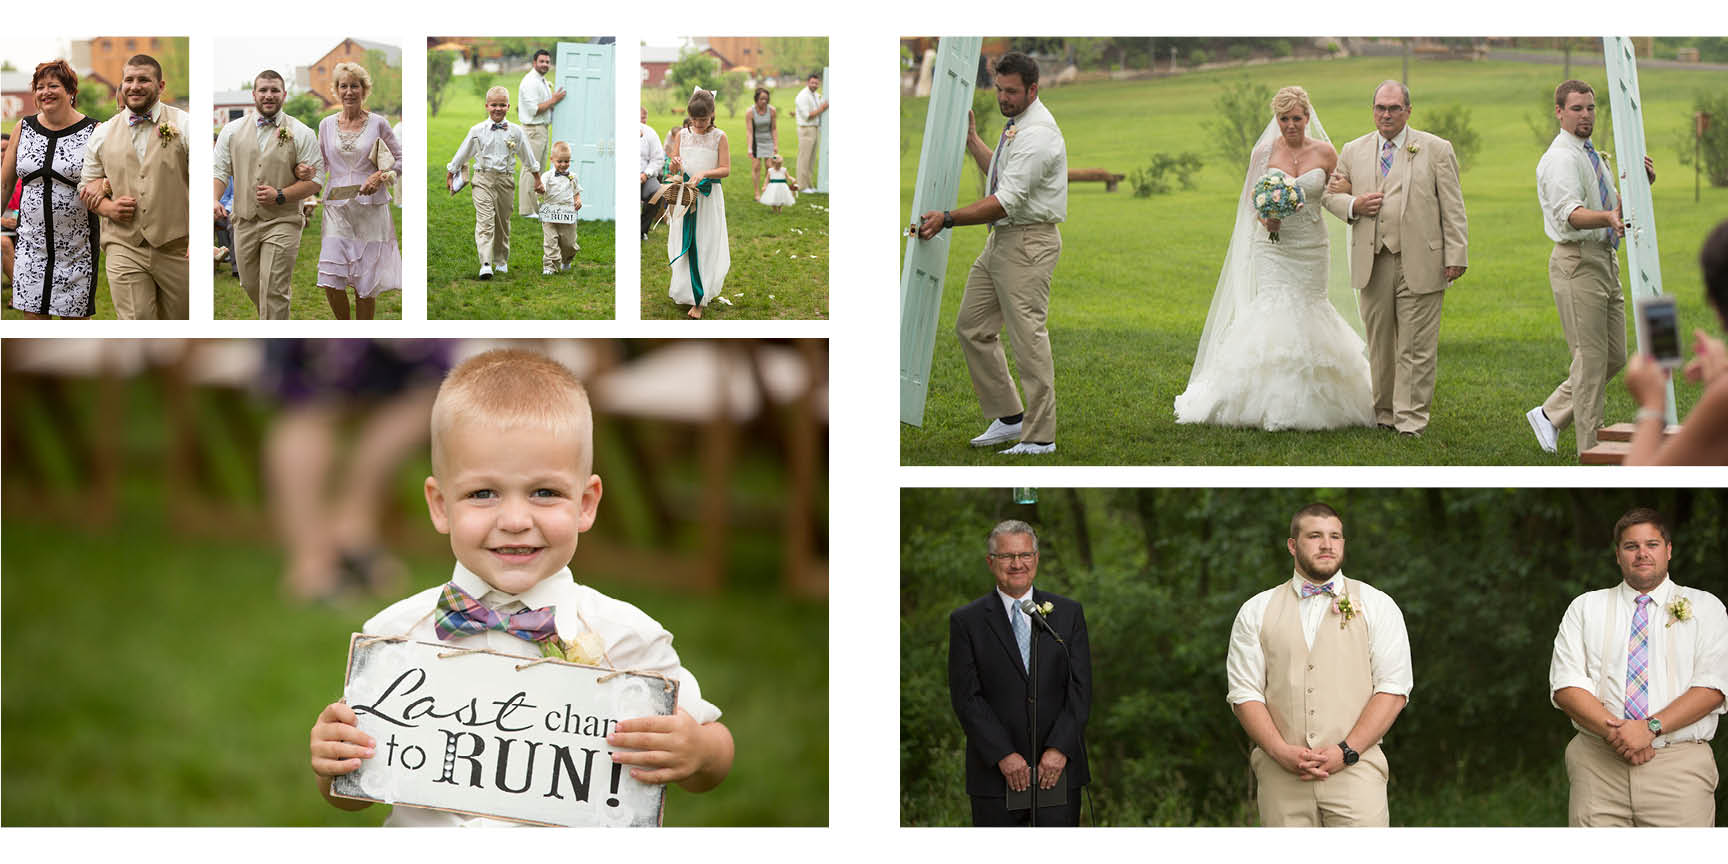 Michigan wedding photographer captures raw emotion as the bride walks down the aisle.